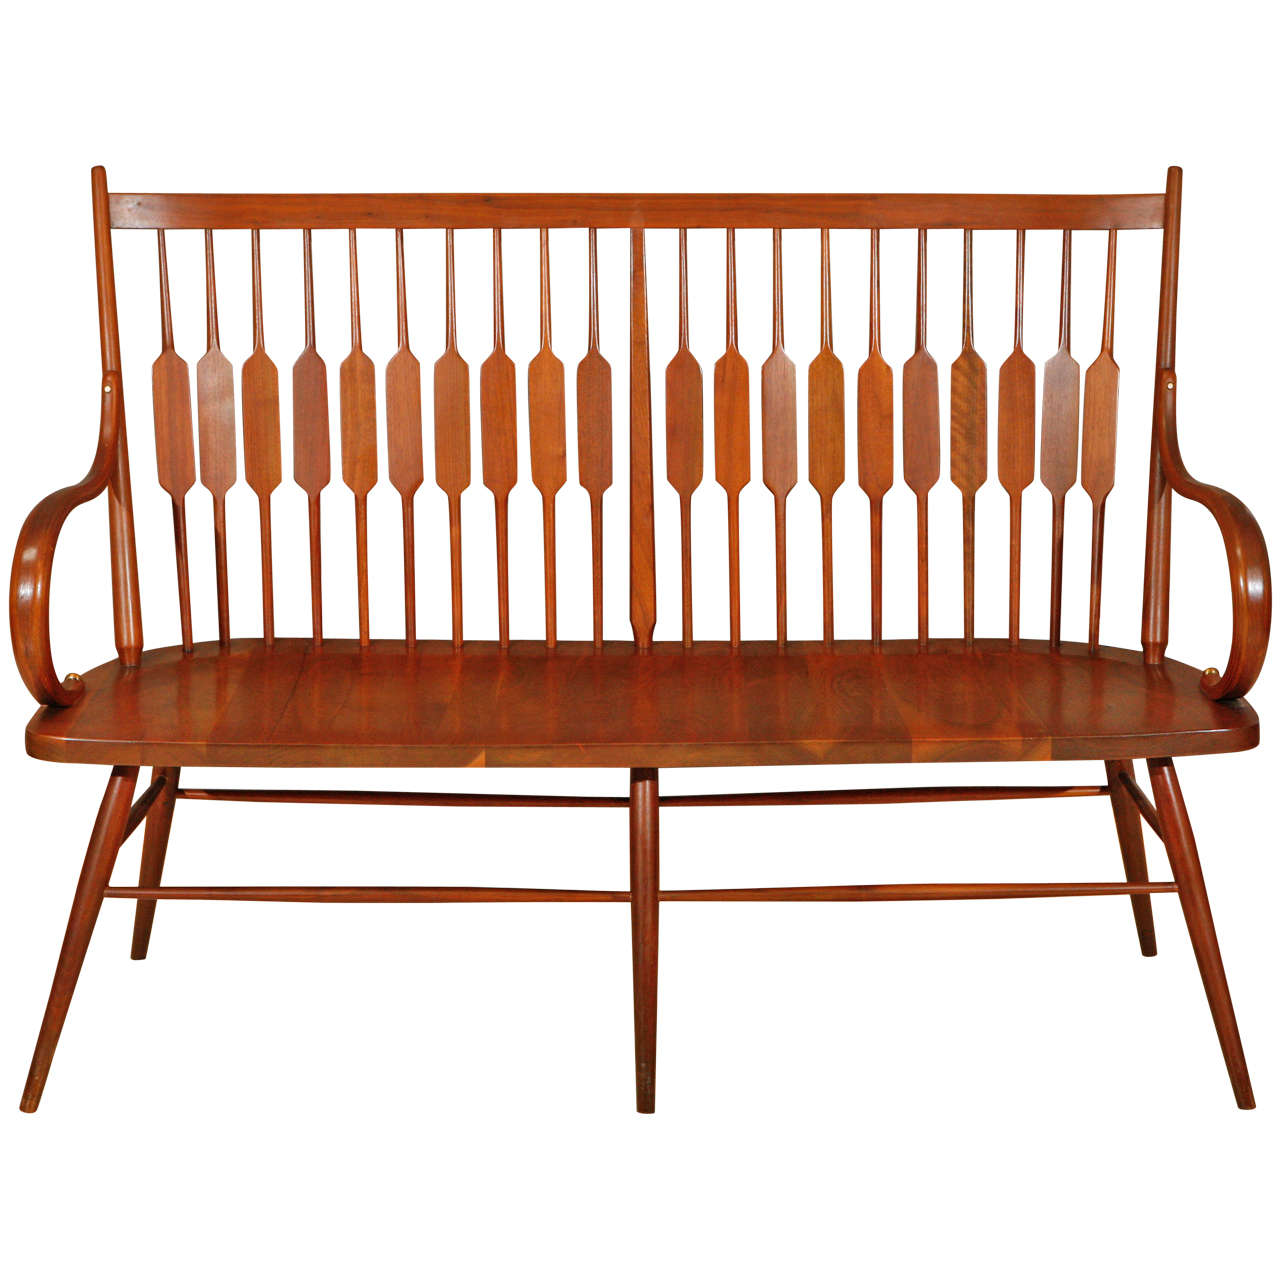 Rare Walnut High Back Declaration Bench By Drexel At 1stdibs